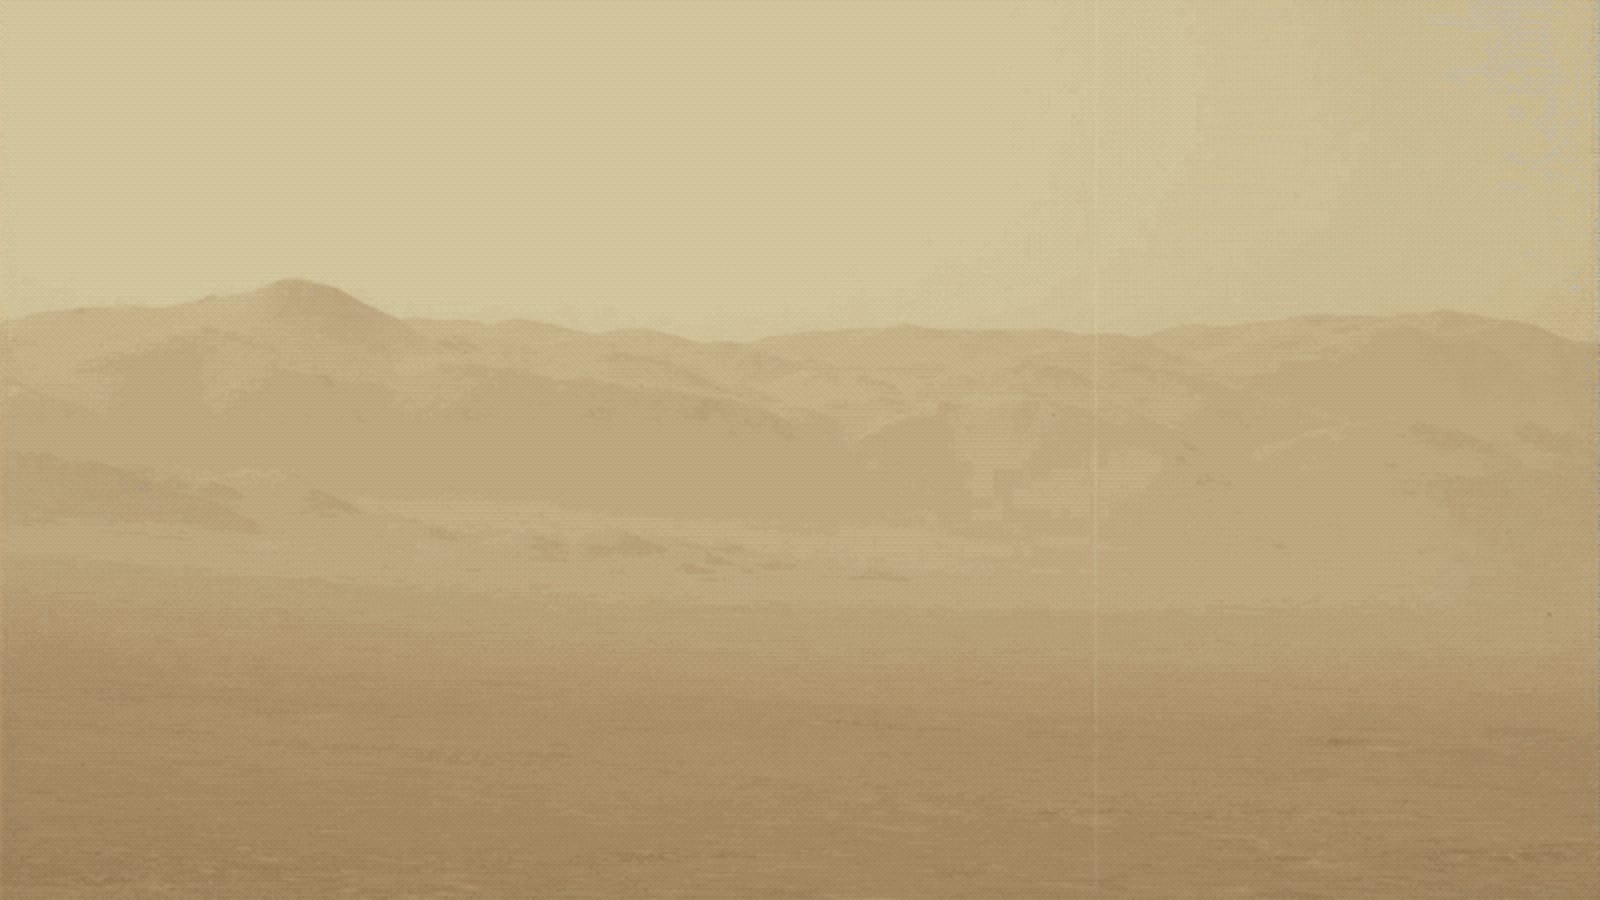 The Dust Storm on Mars Is So Huge It Now Encircles the Entire Planet